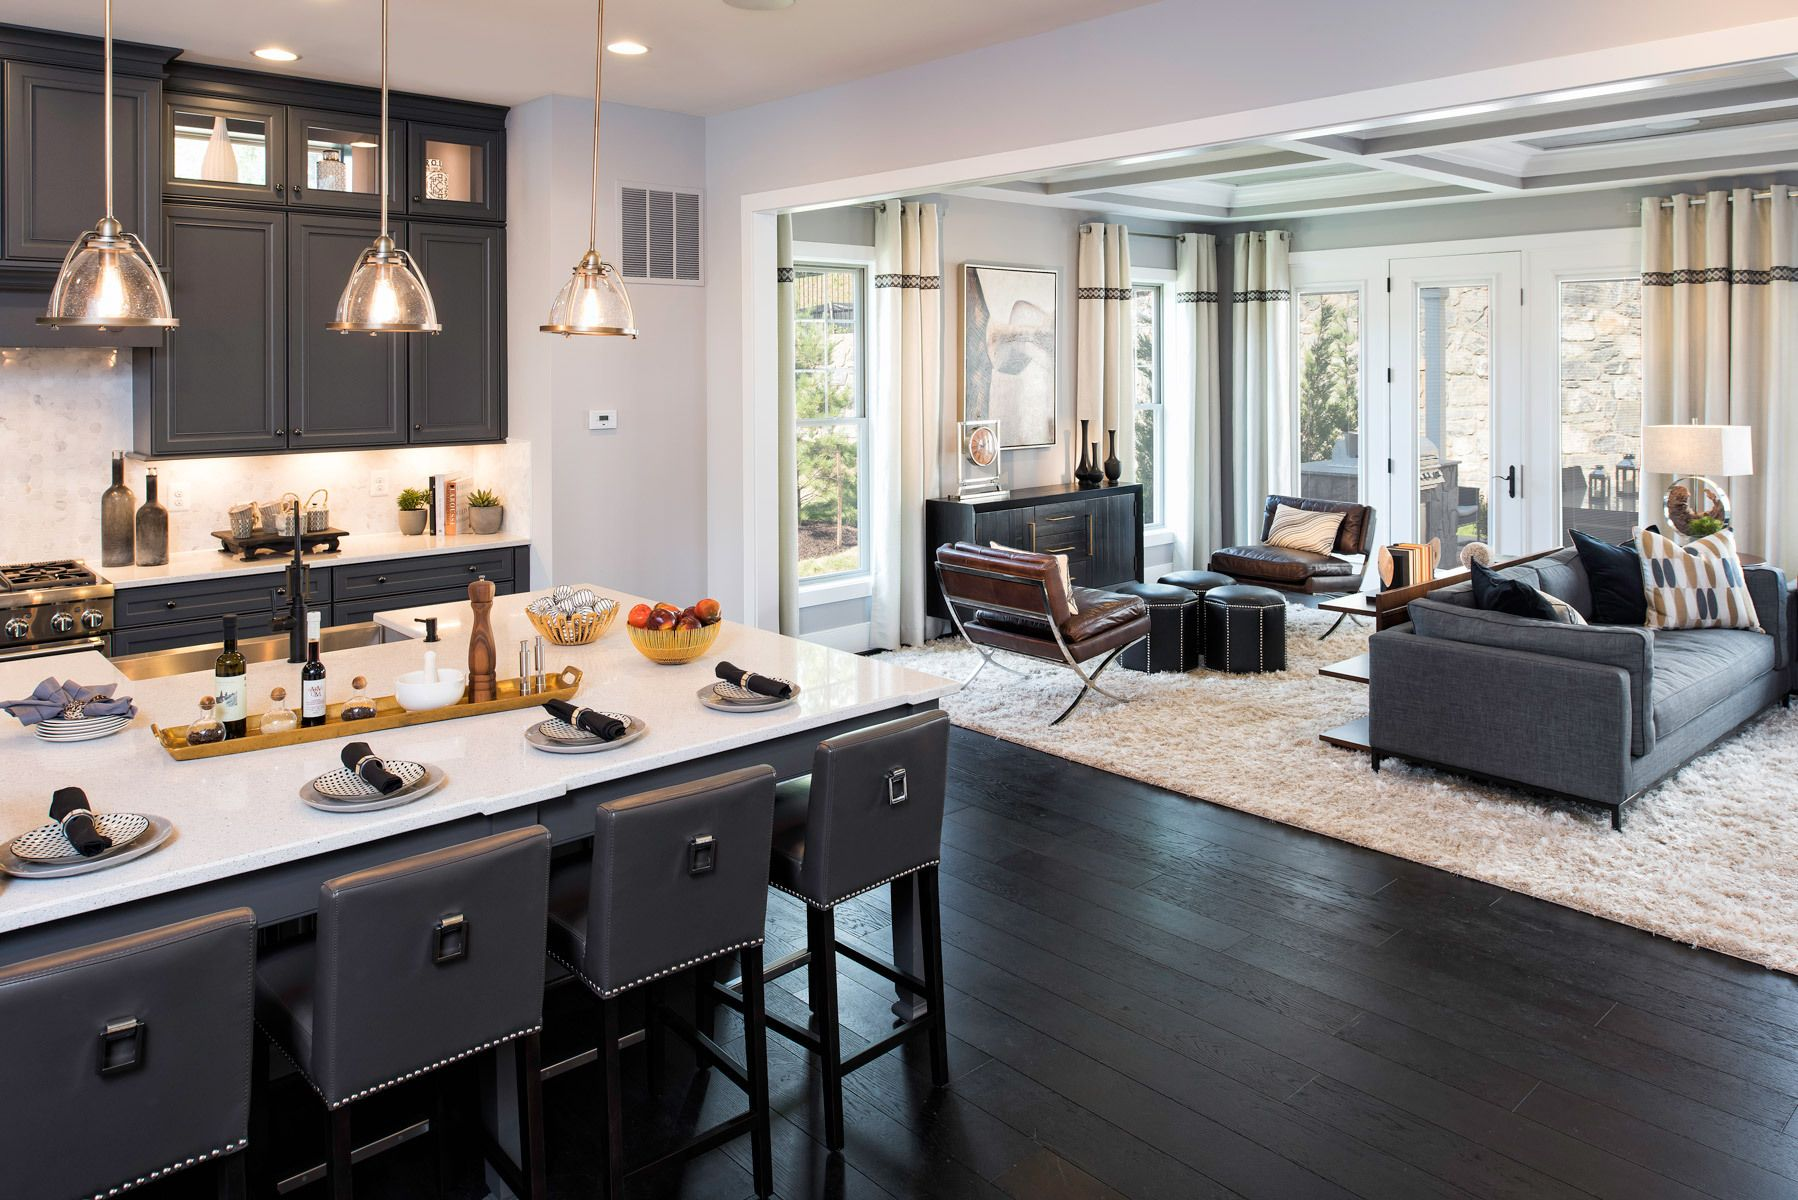 Camberley Homes at Potomac HighlandsInterior Design by Laura Bendik